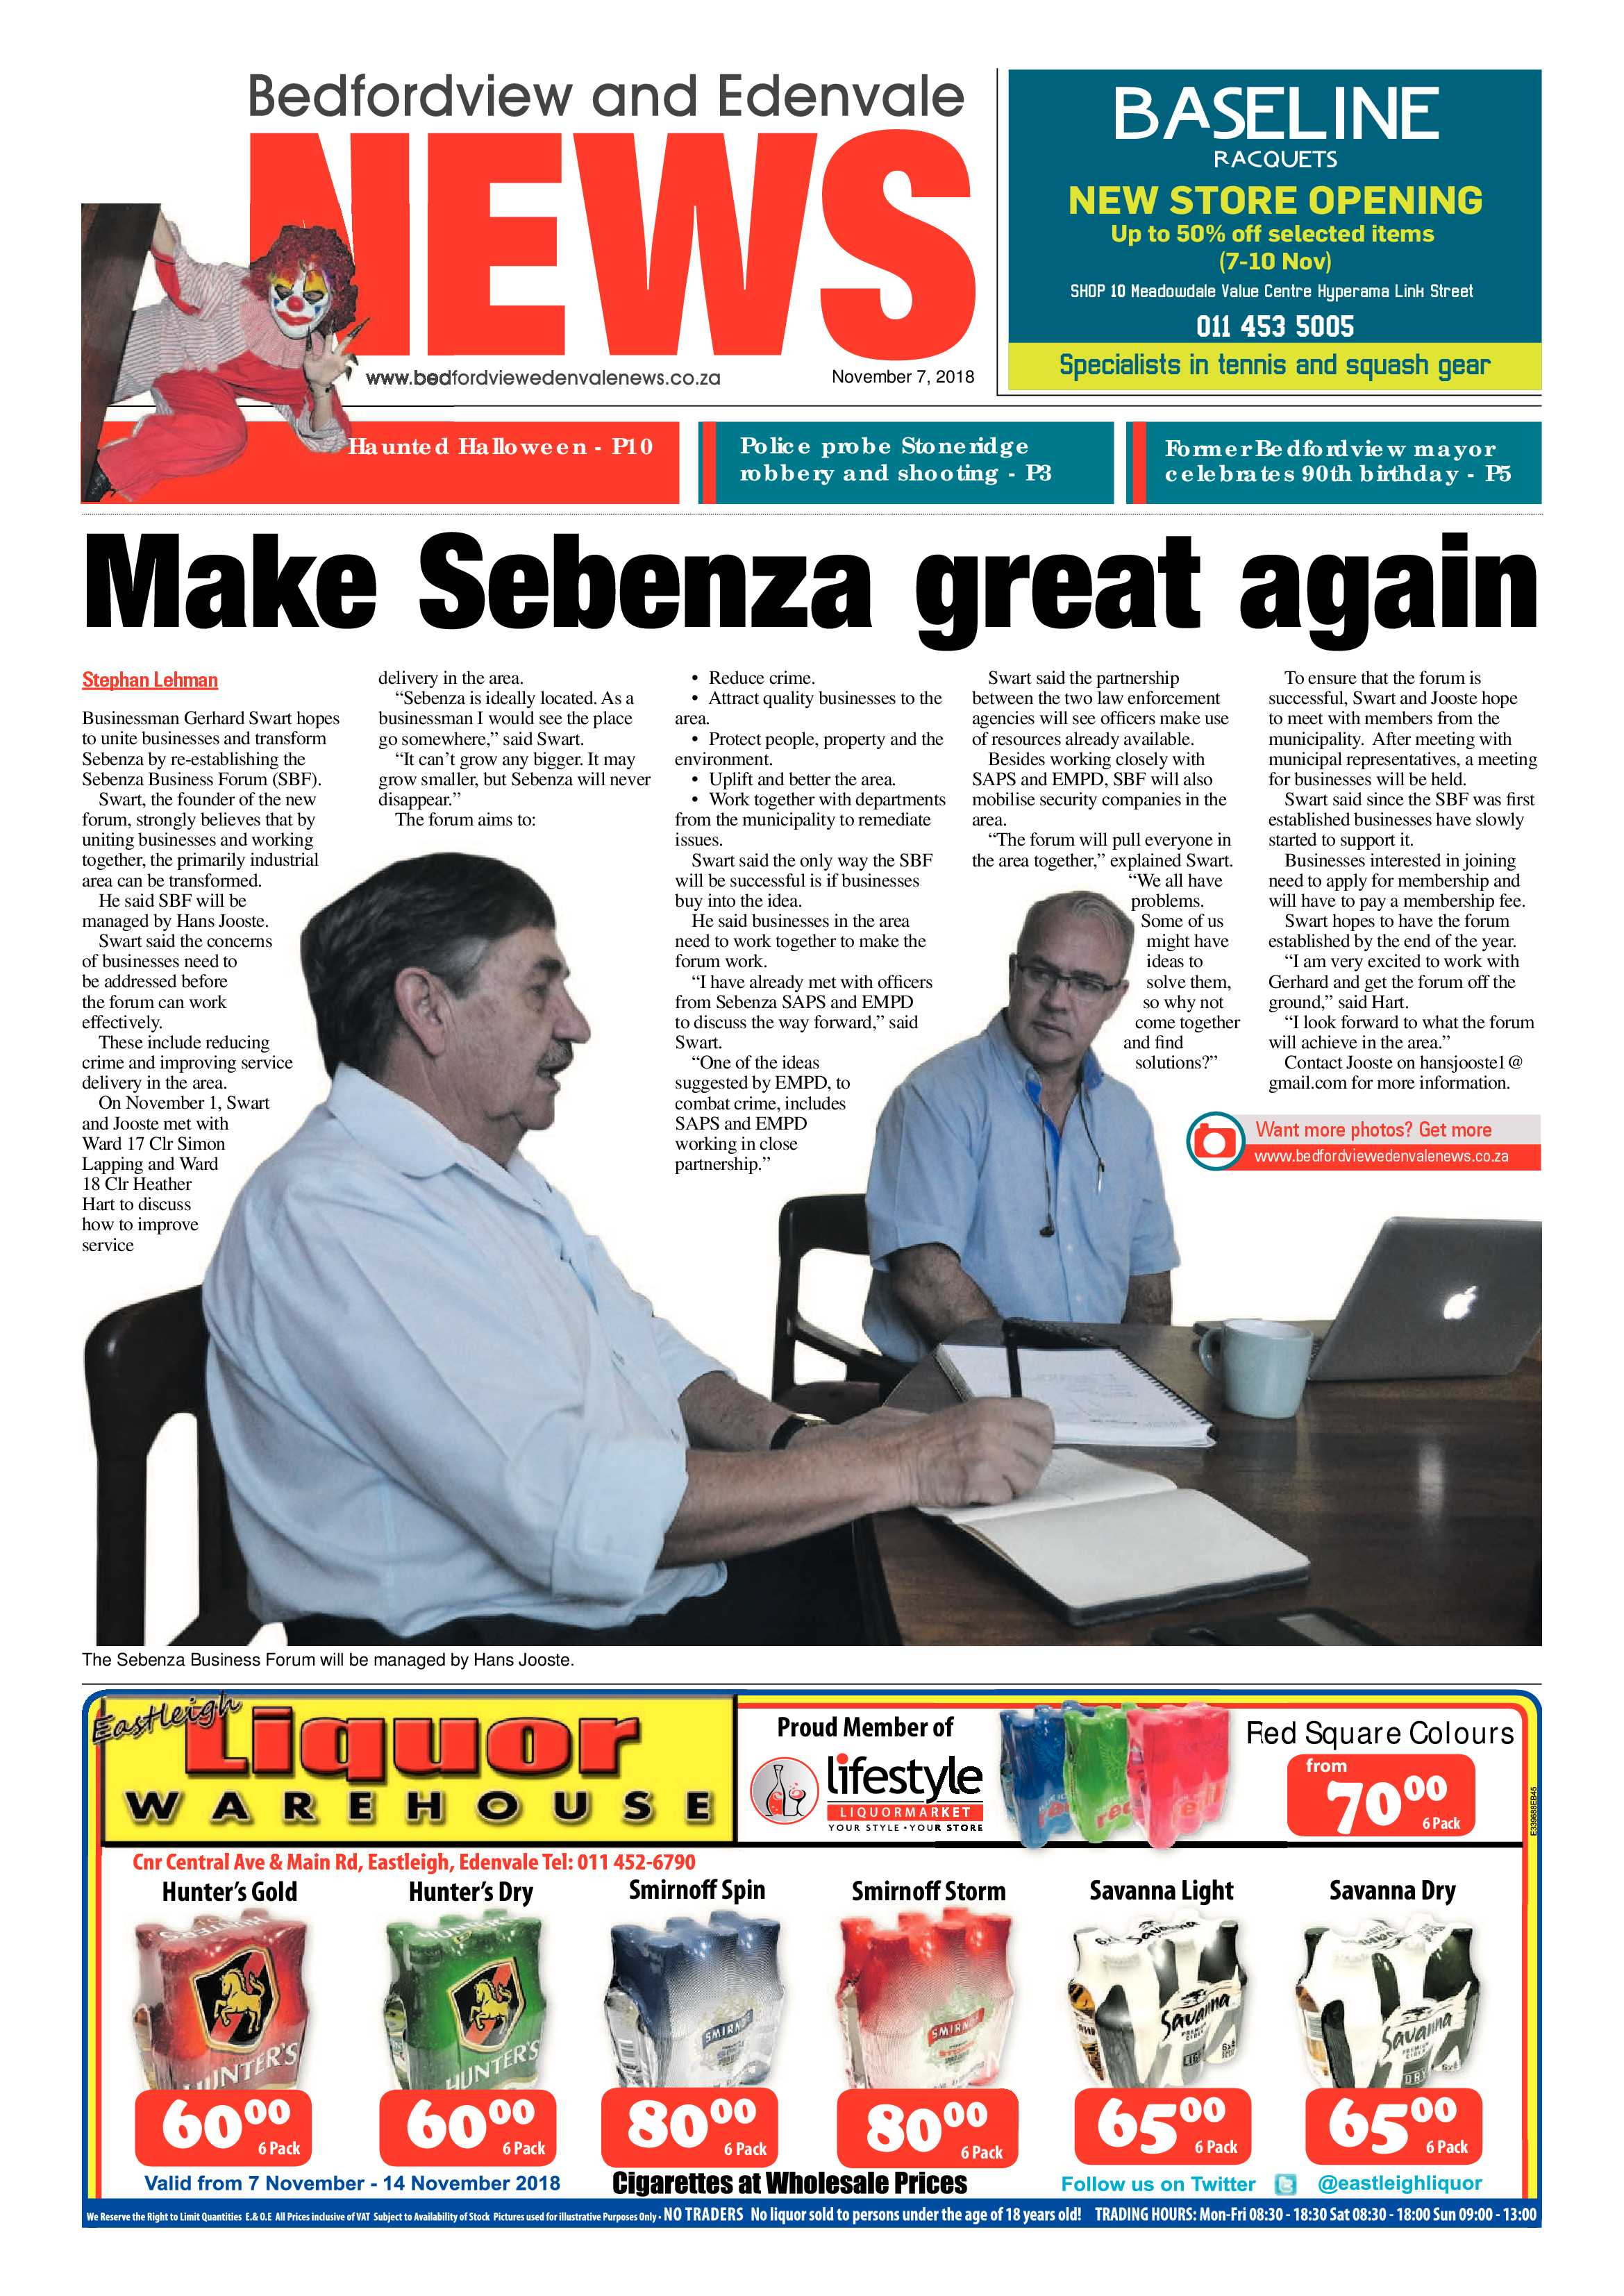 bedfordview-edenvale-news-07-november-2018-epapers-page-1